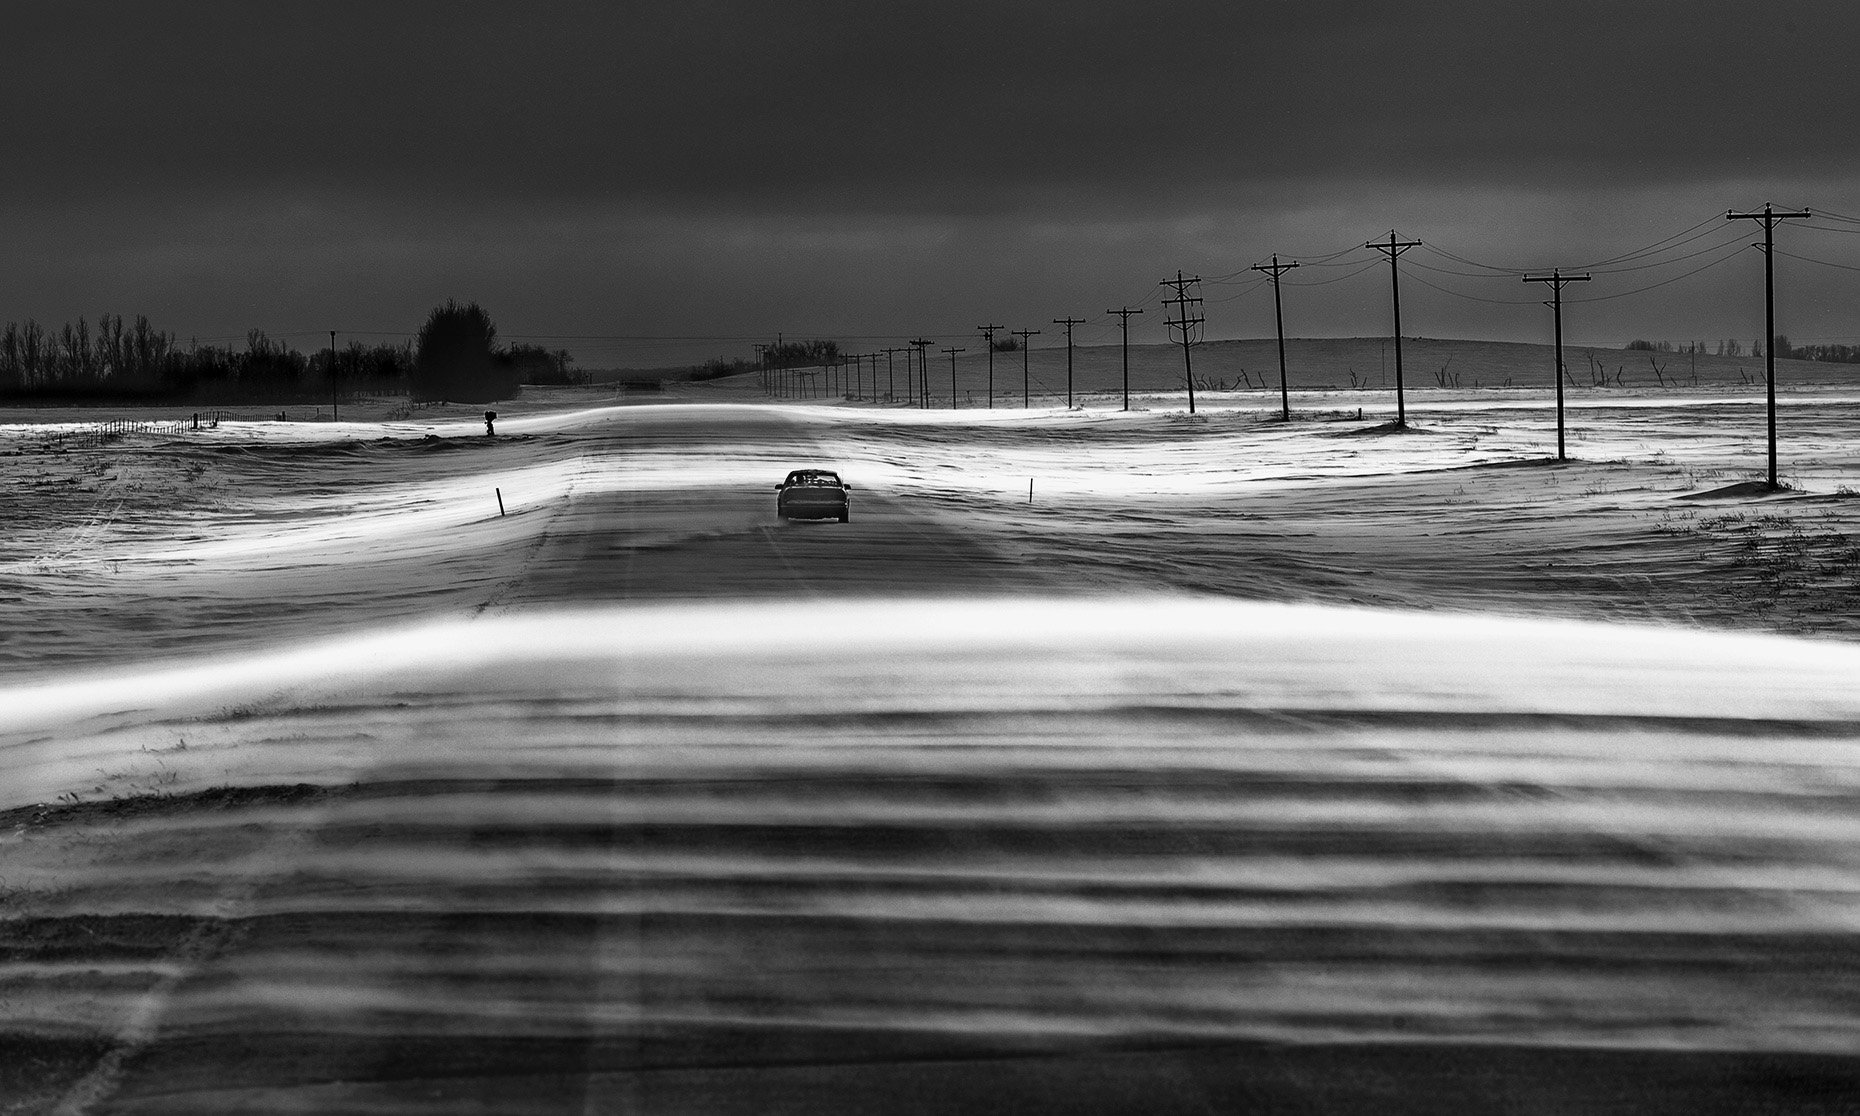 A North Dakota blizzard photographed by Fargo, North Dakota documentary photographer Dan Koeck.